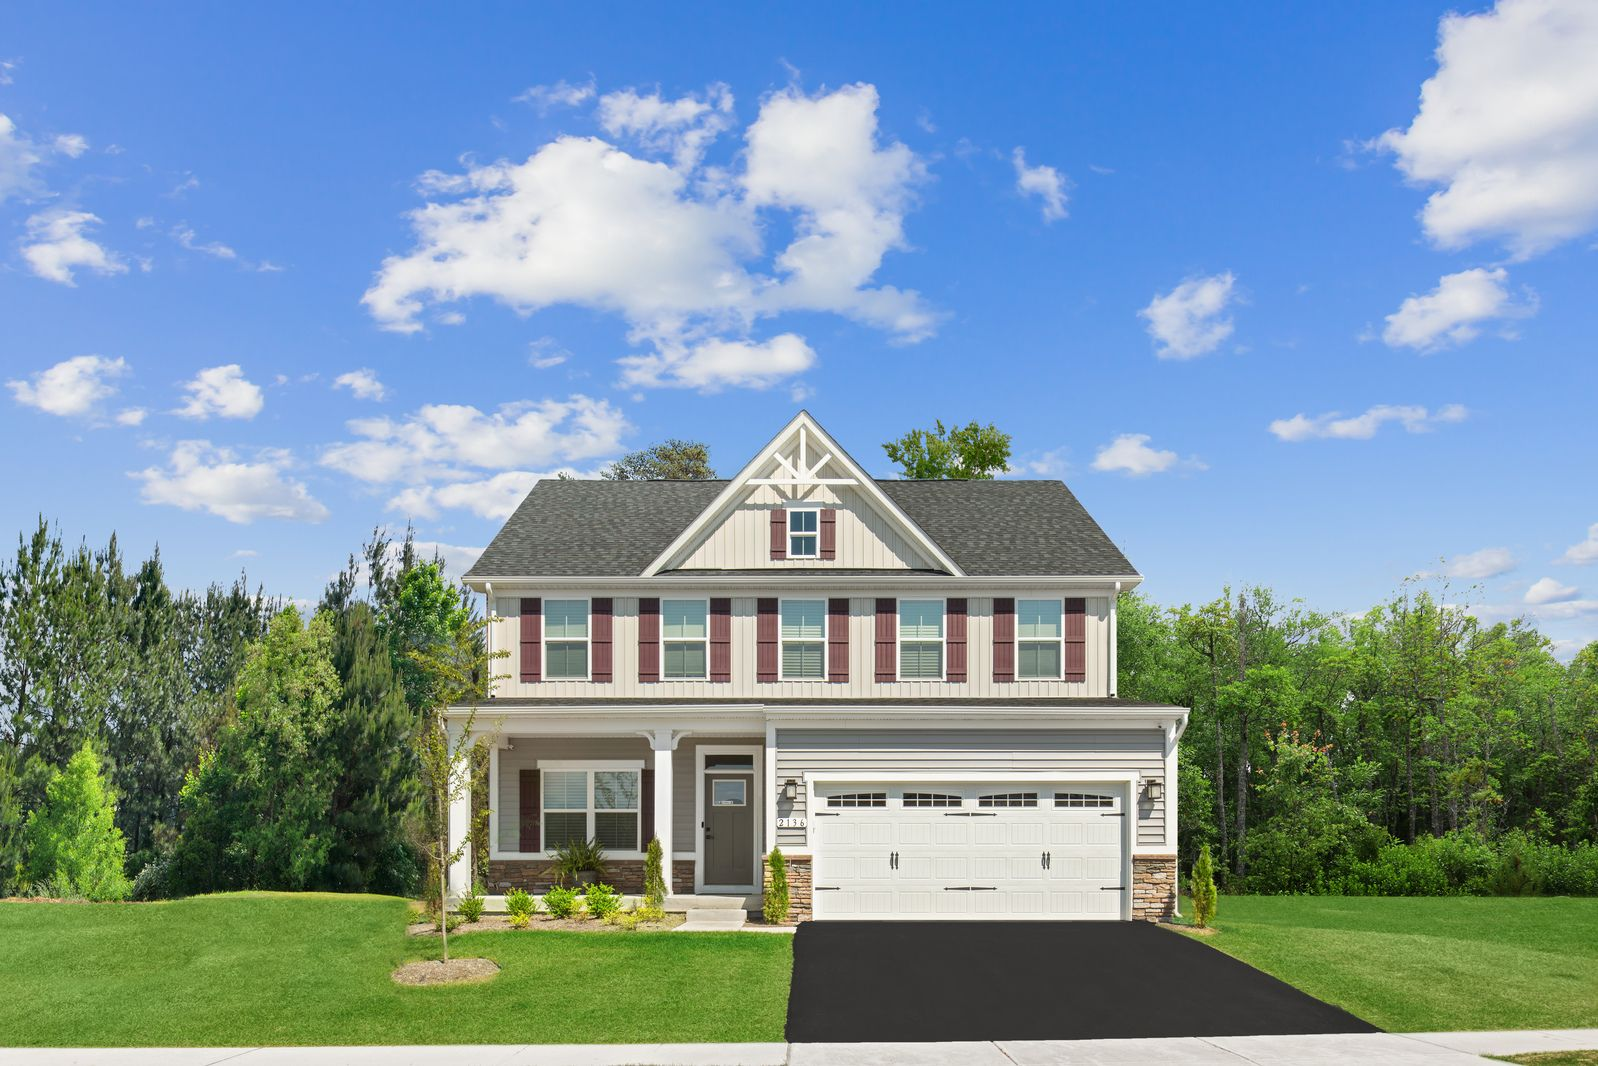 Welcome to Sunrise Junction:The only new community in Chartiers Valley Schools located on the Panhandle Trail. Minutes to Collier Park, Oakdale & Settlers Ridge.Click here to schedule your visit.